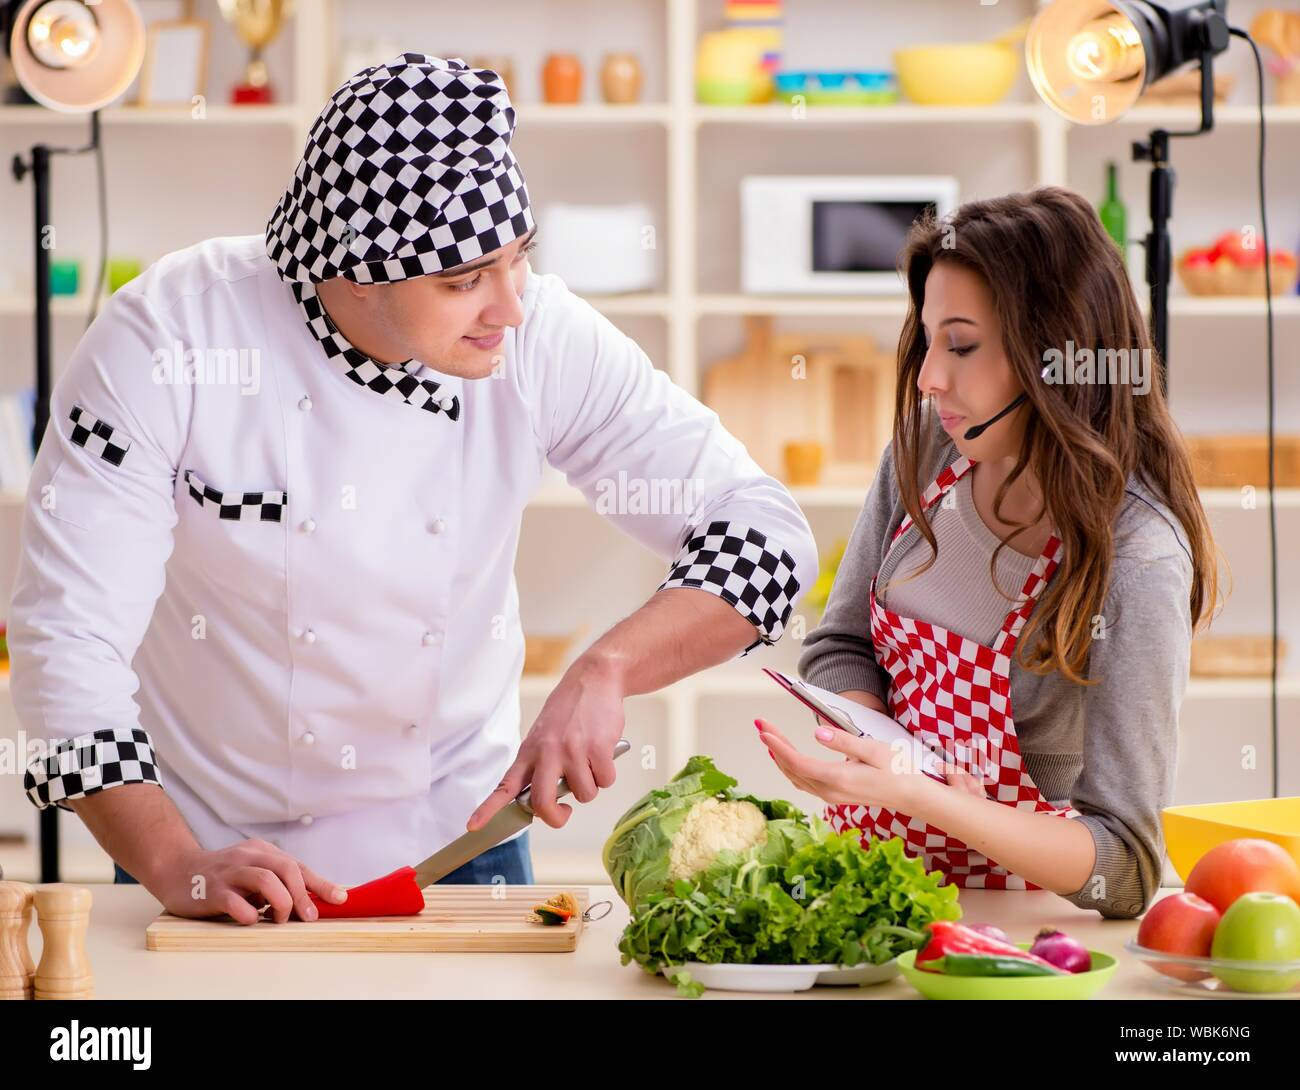 The Food Cooking Tv Show In The Studio Stock Photo Alamy